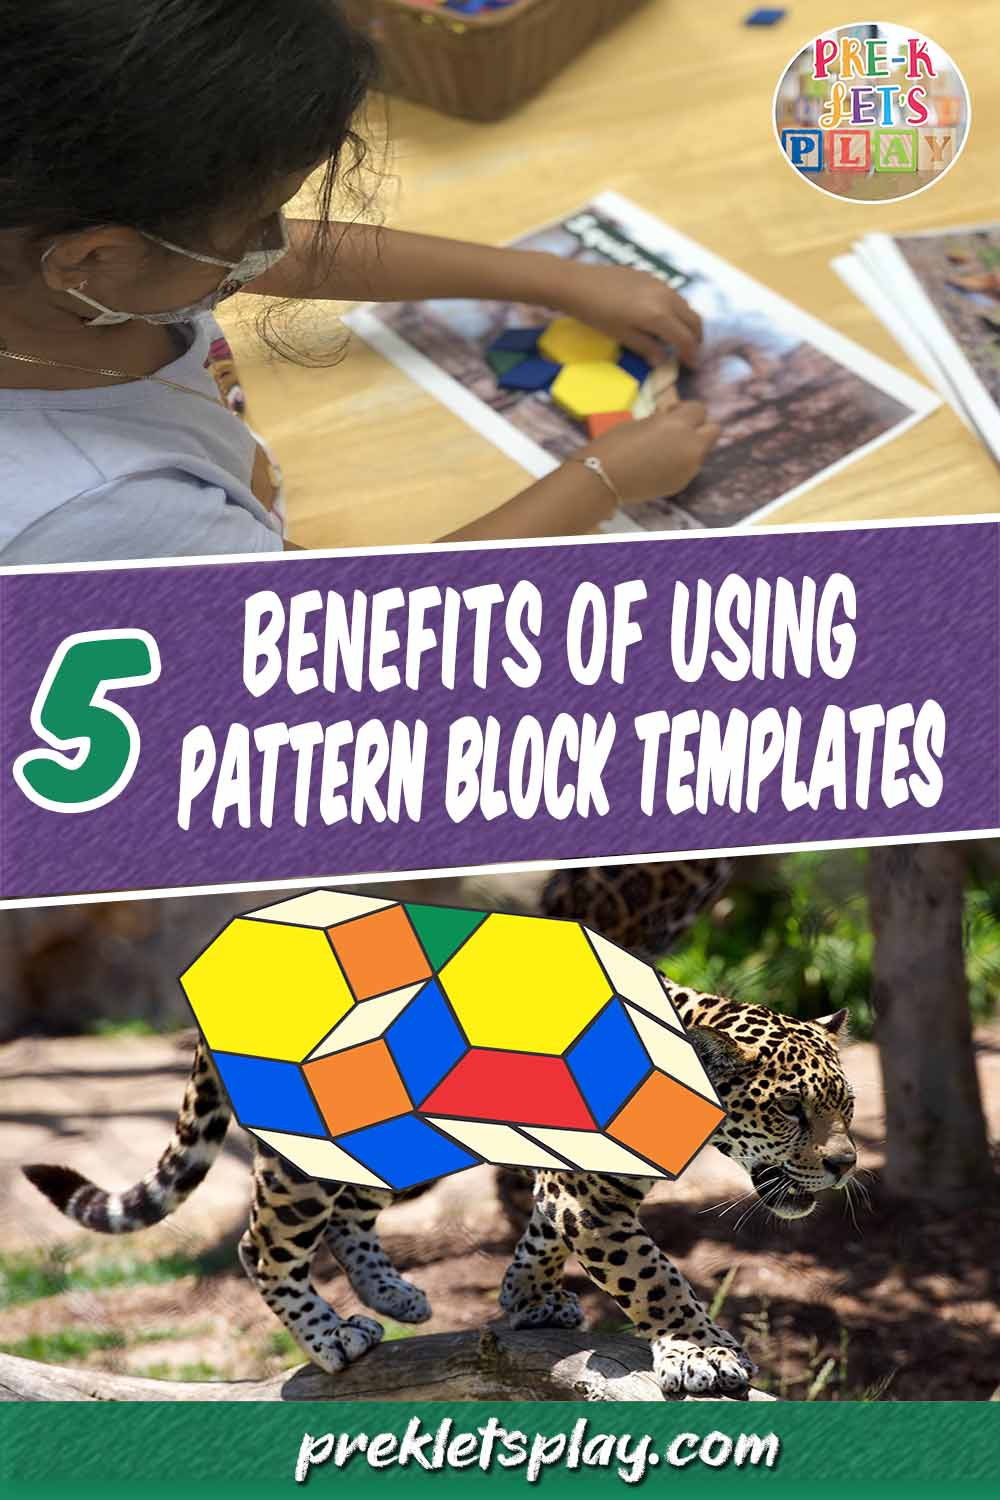 Using Pattern Block Templates and its Top 5 Benefits